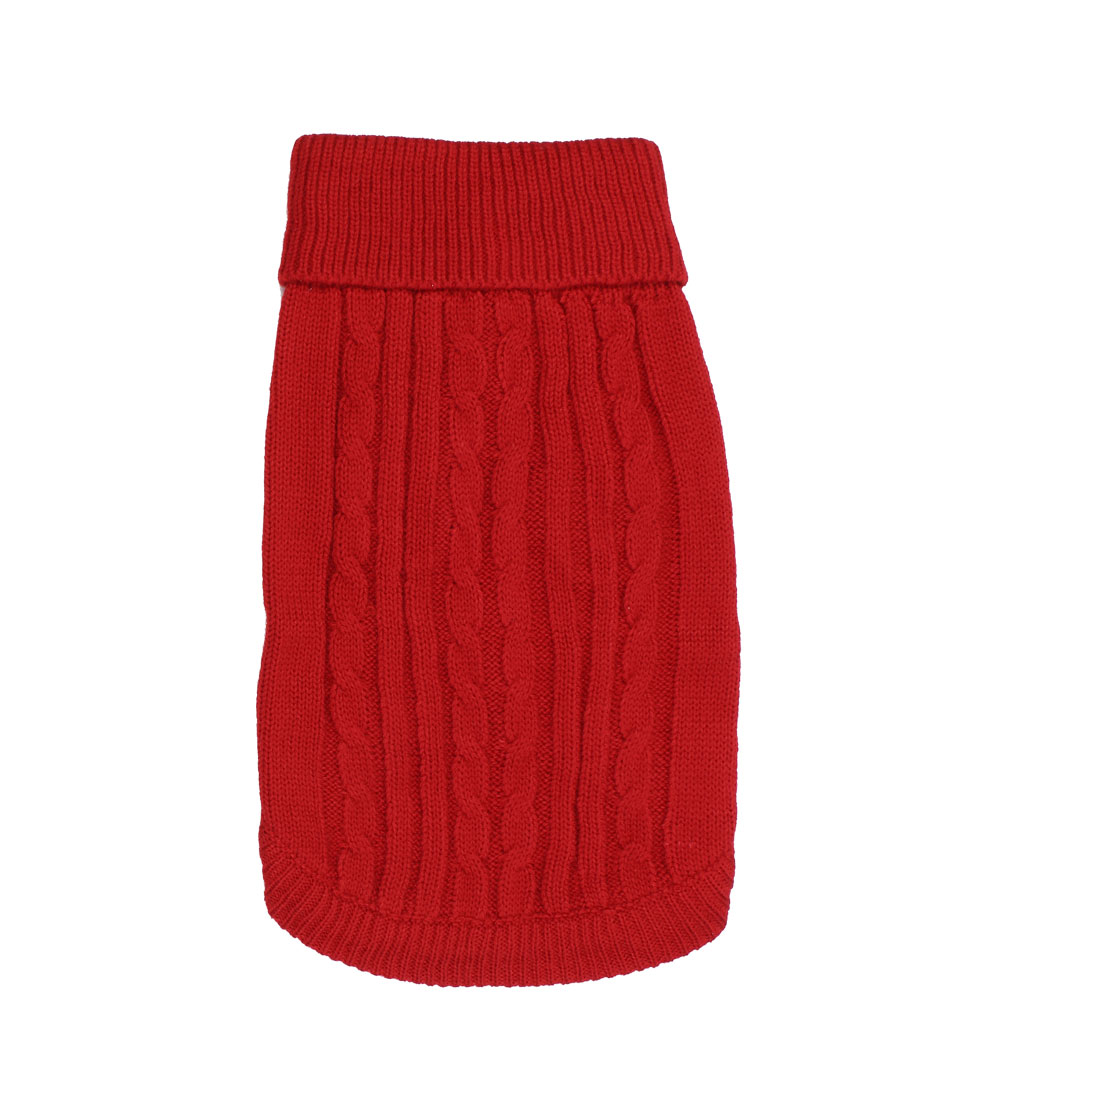 Pet Dog Ribbed Cuff Twisted Warm Turtleneck Apparel Knitwear Sweater Red Size S